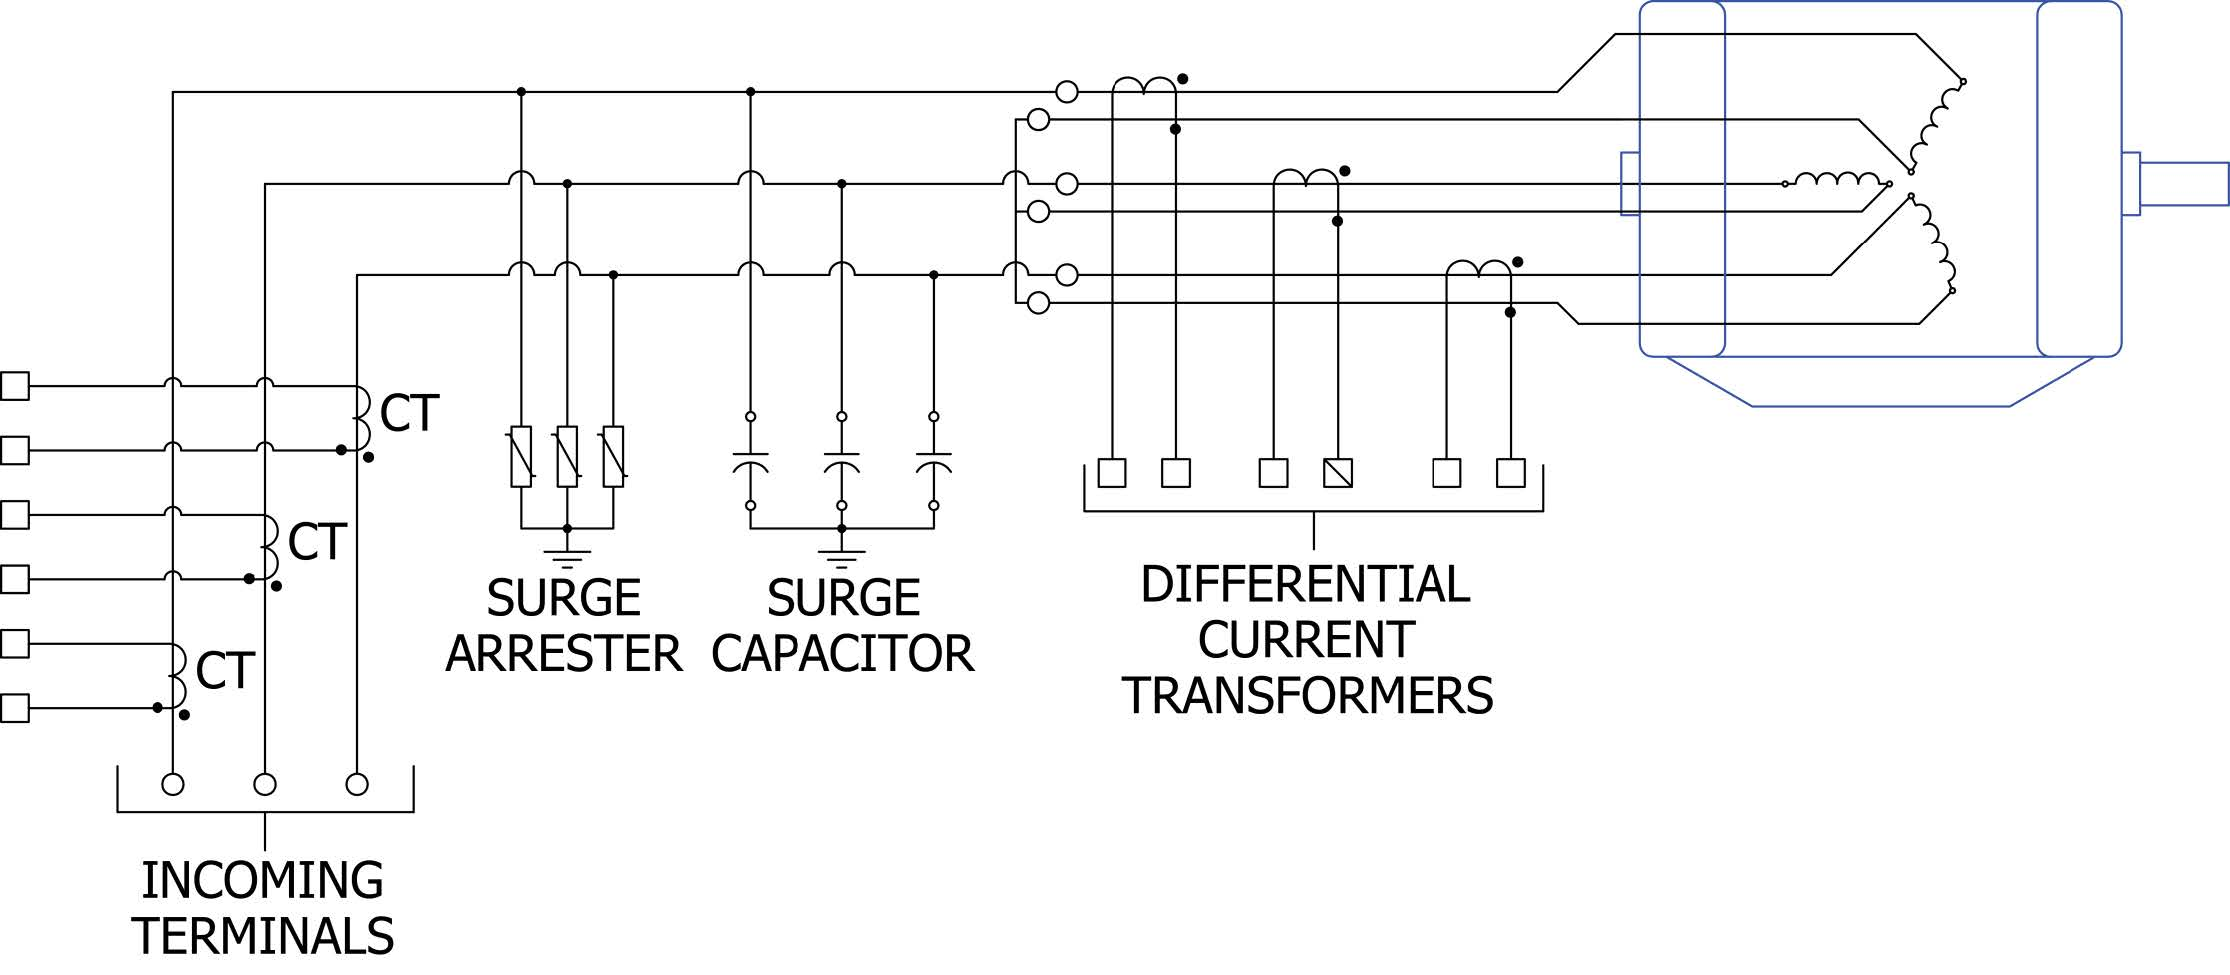 electrical single phase transformer wiring diagram with Msp on Electric Shock Drowning Explained as well Filter besides 9298403 additionally Pump Panels additionally Electrical safety.